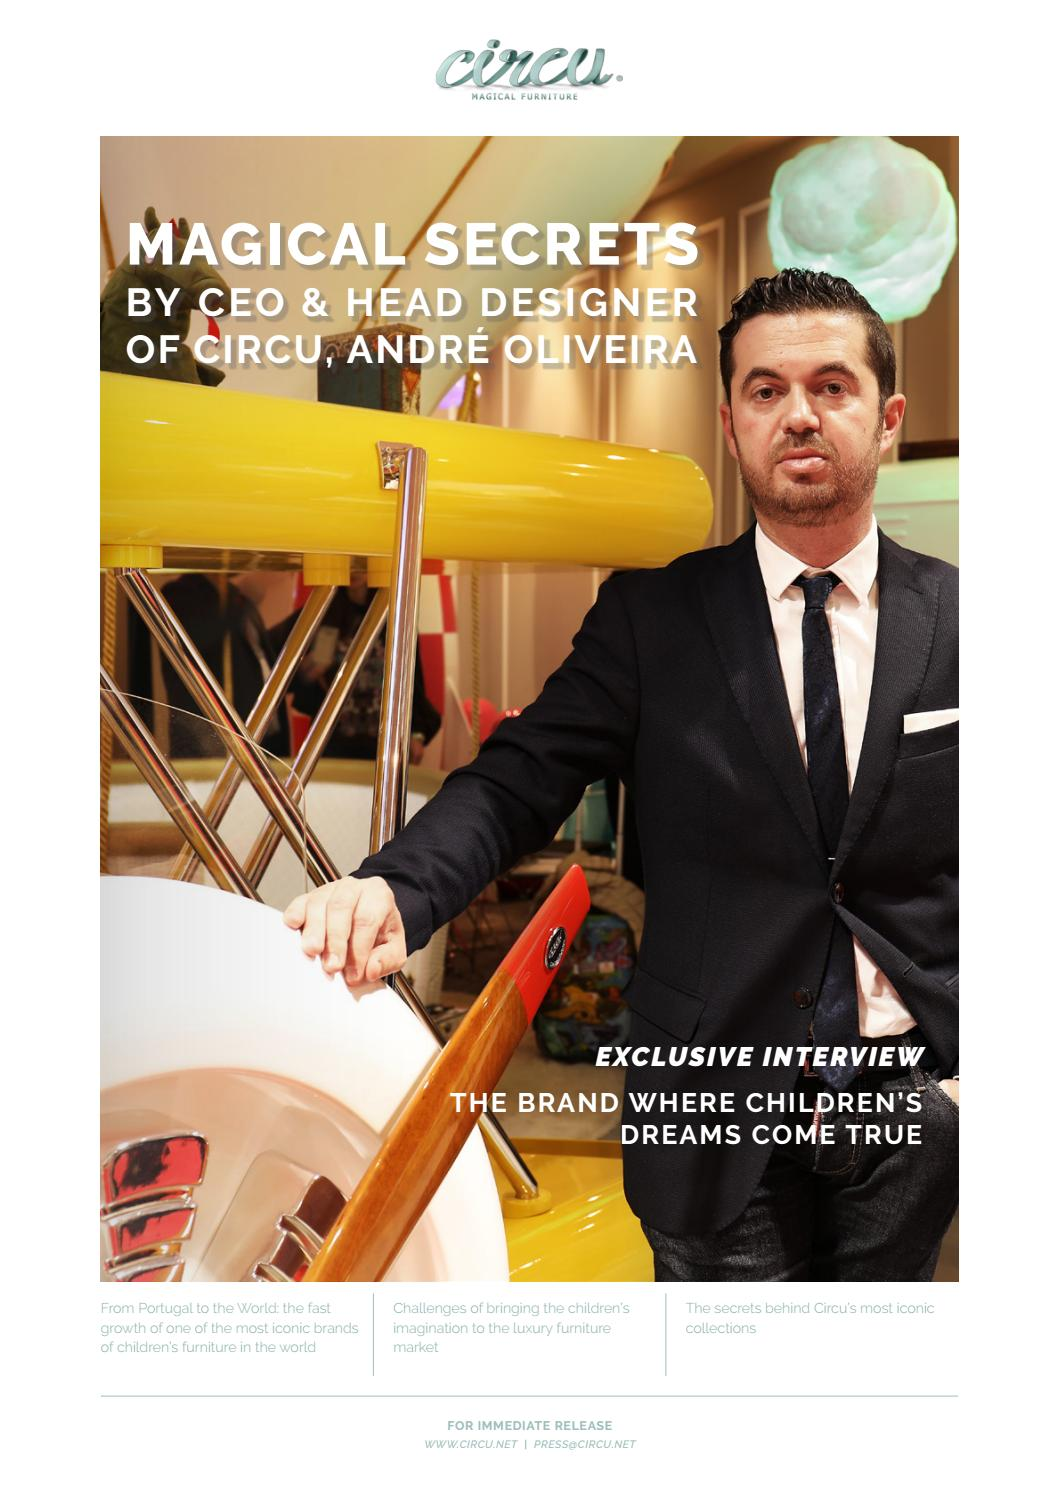 Magical Secrets by CEO & Head Designer of Circu, André Oliveira by